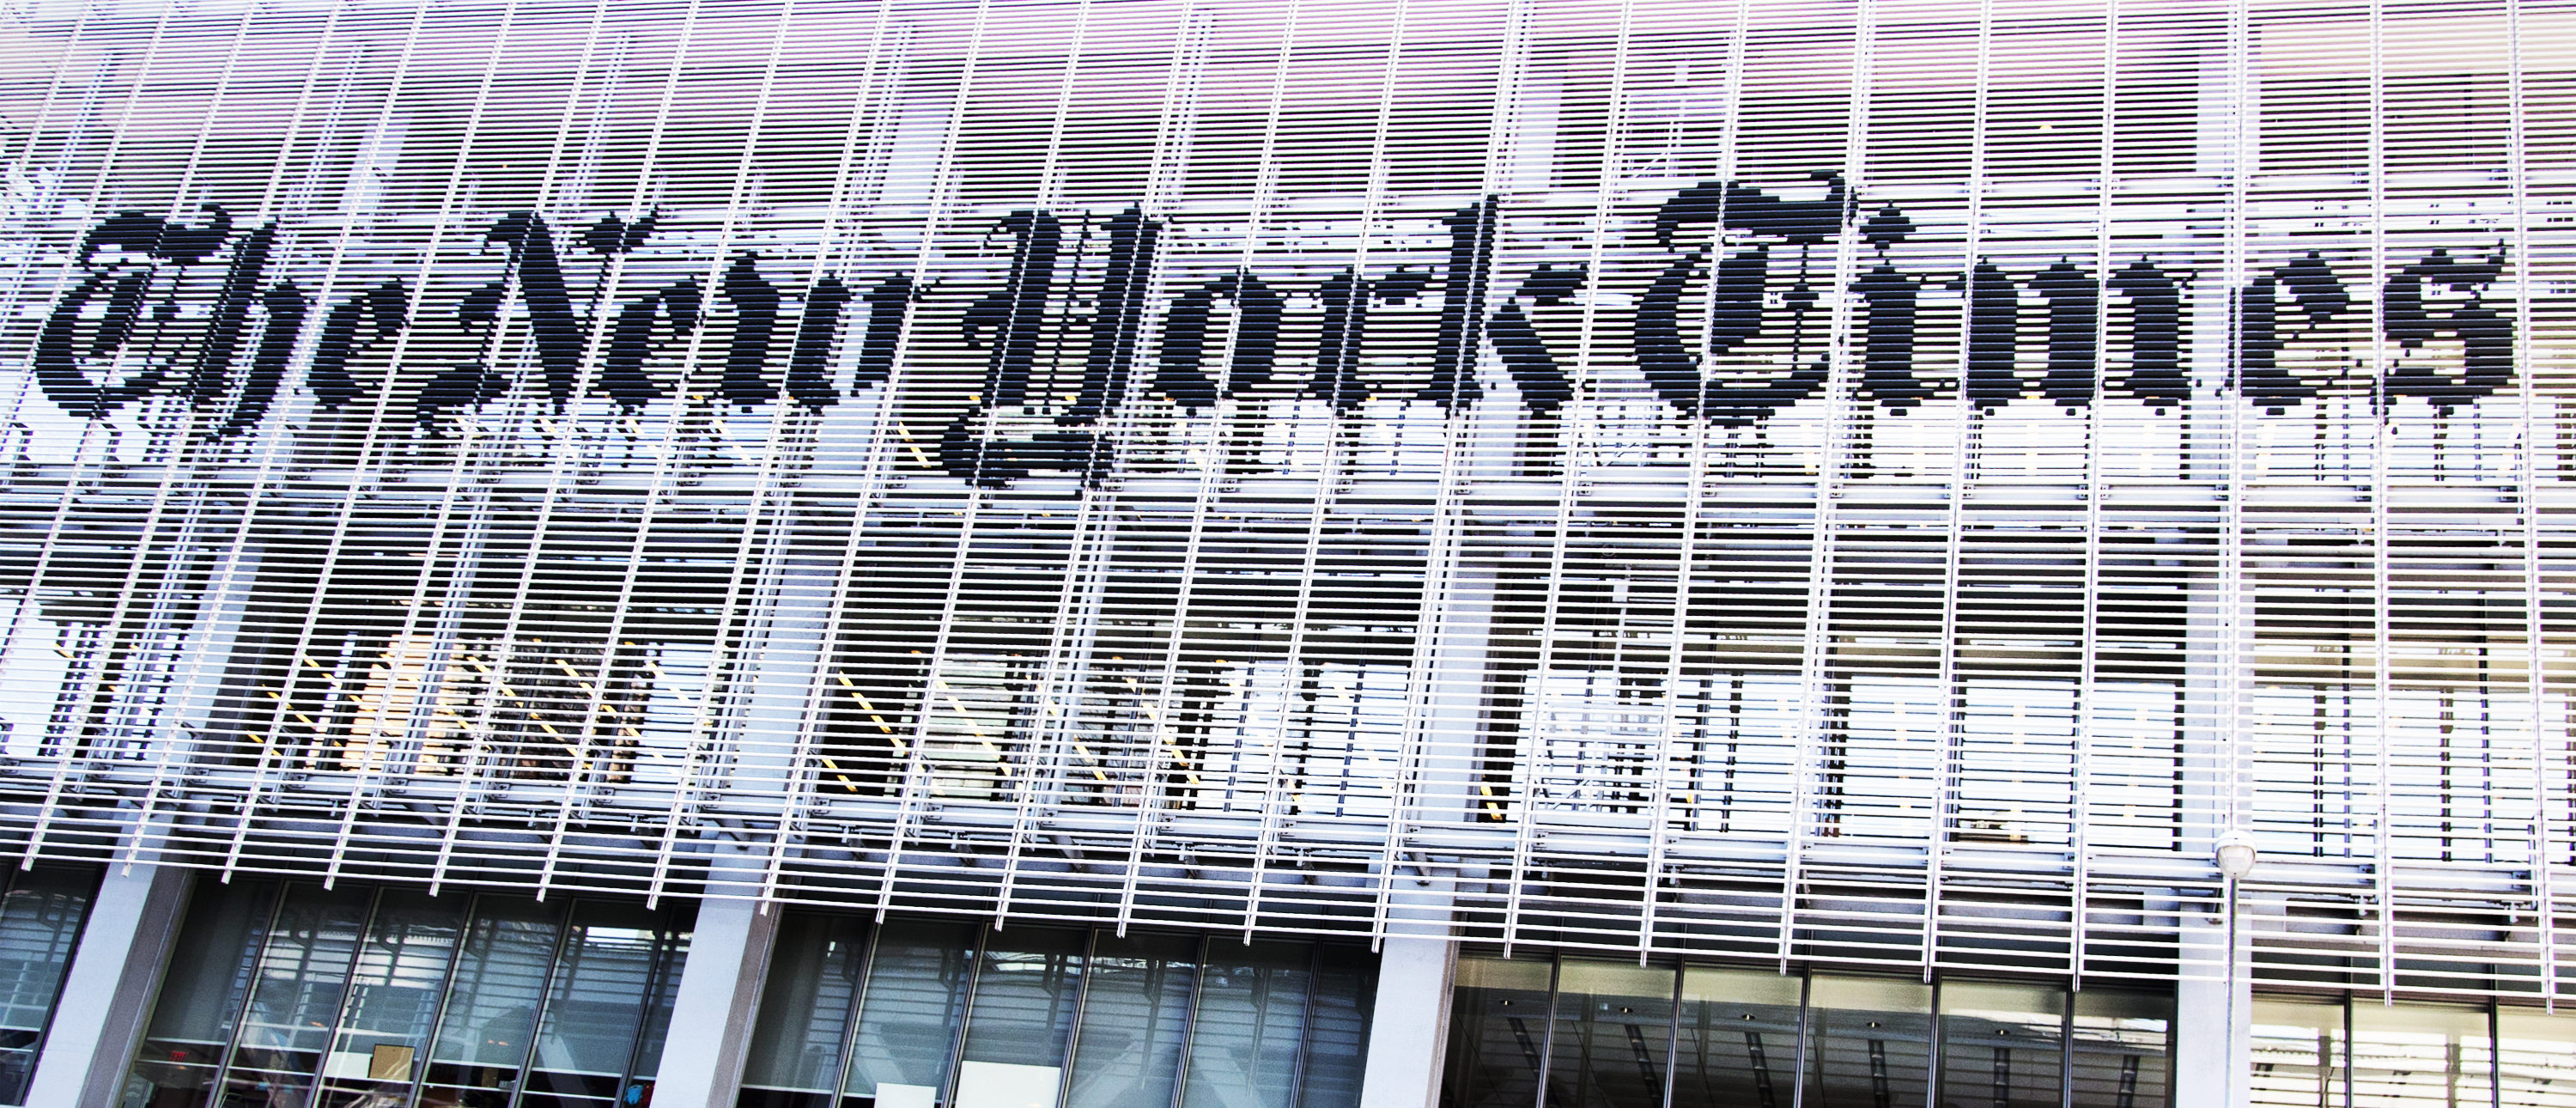 The New York Times building on June 3, 2012. (Erika Cross/Shutterstock)